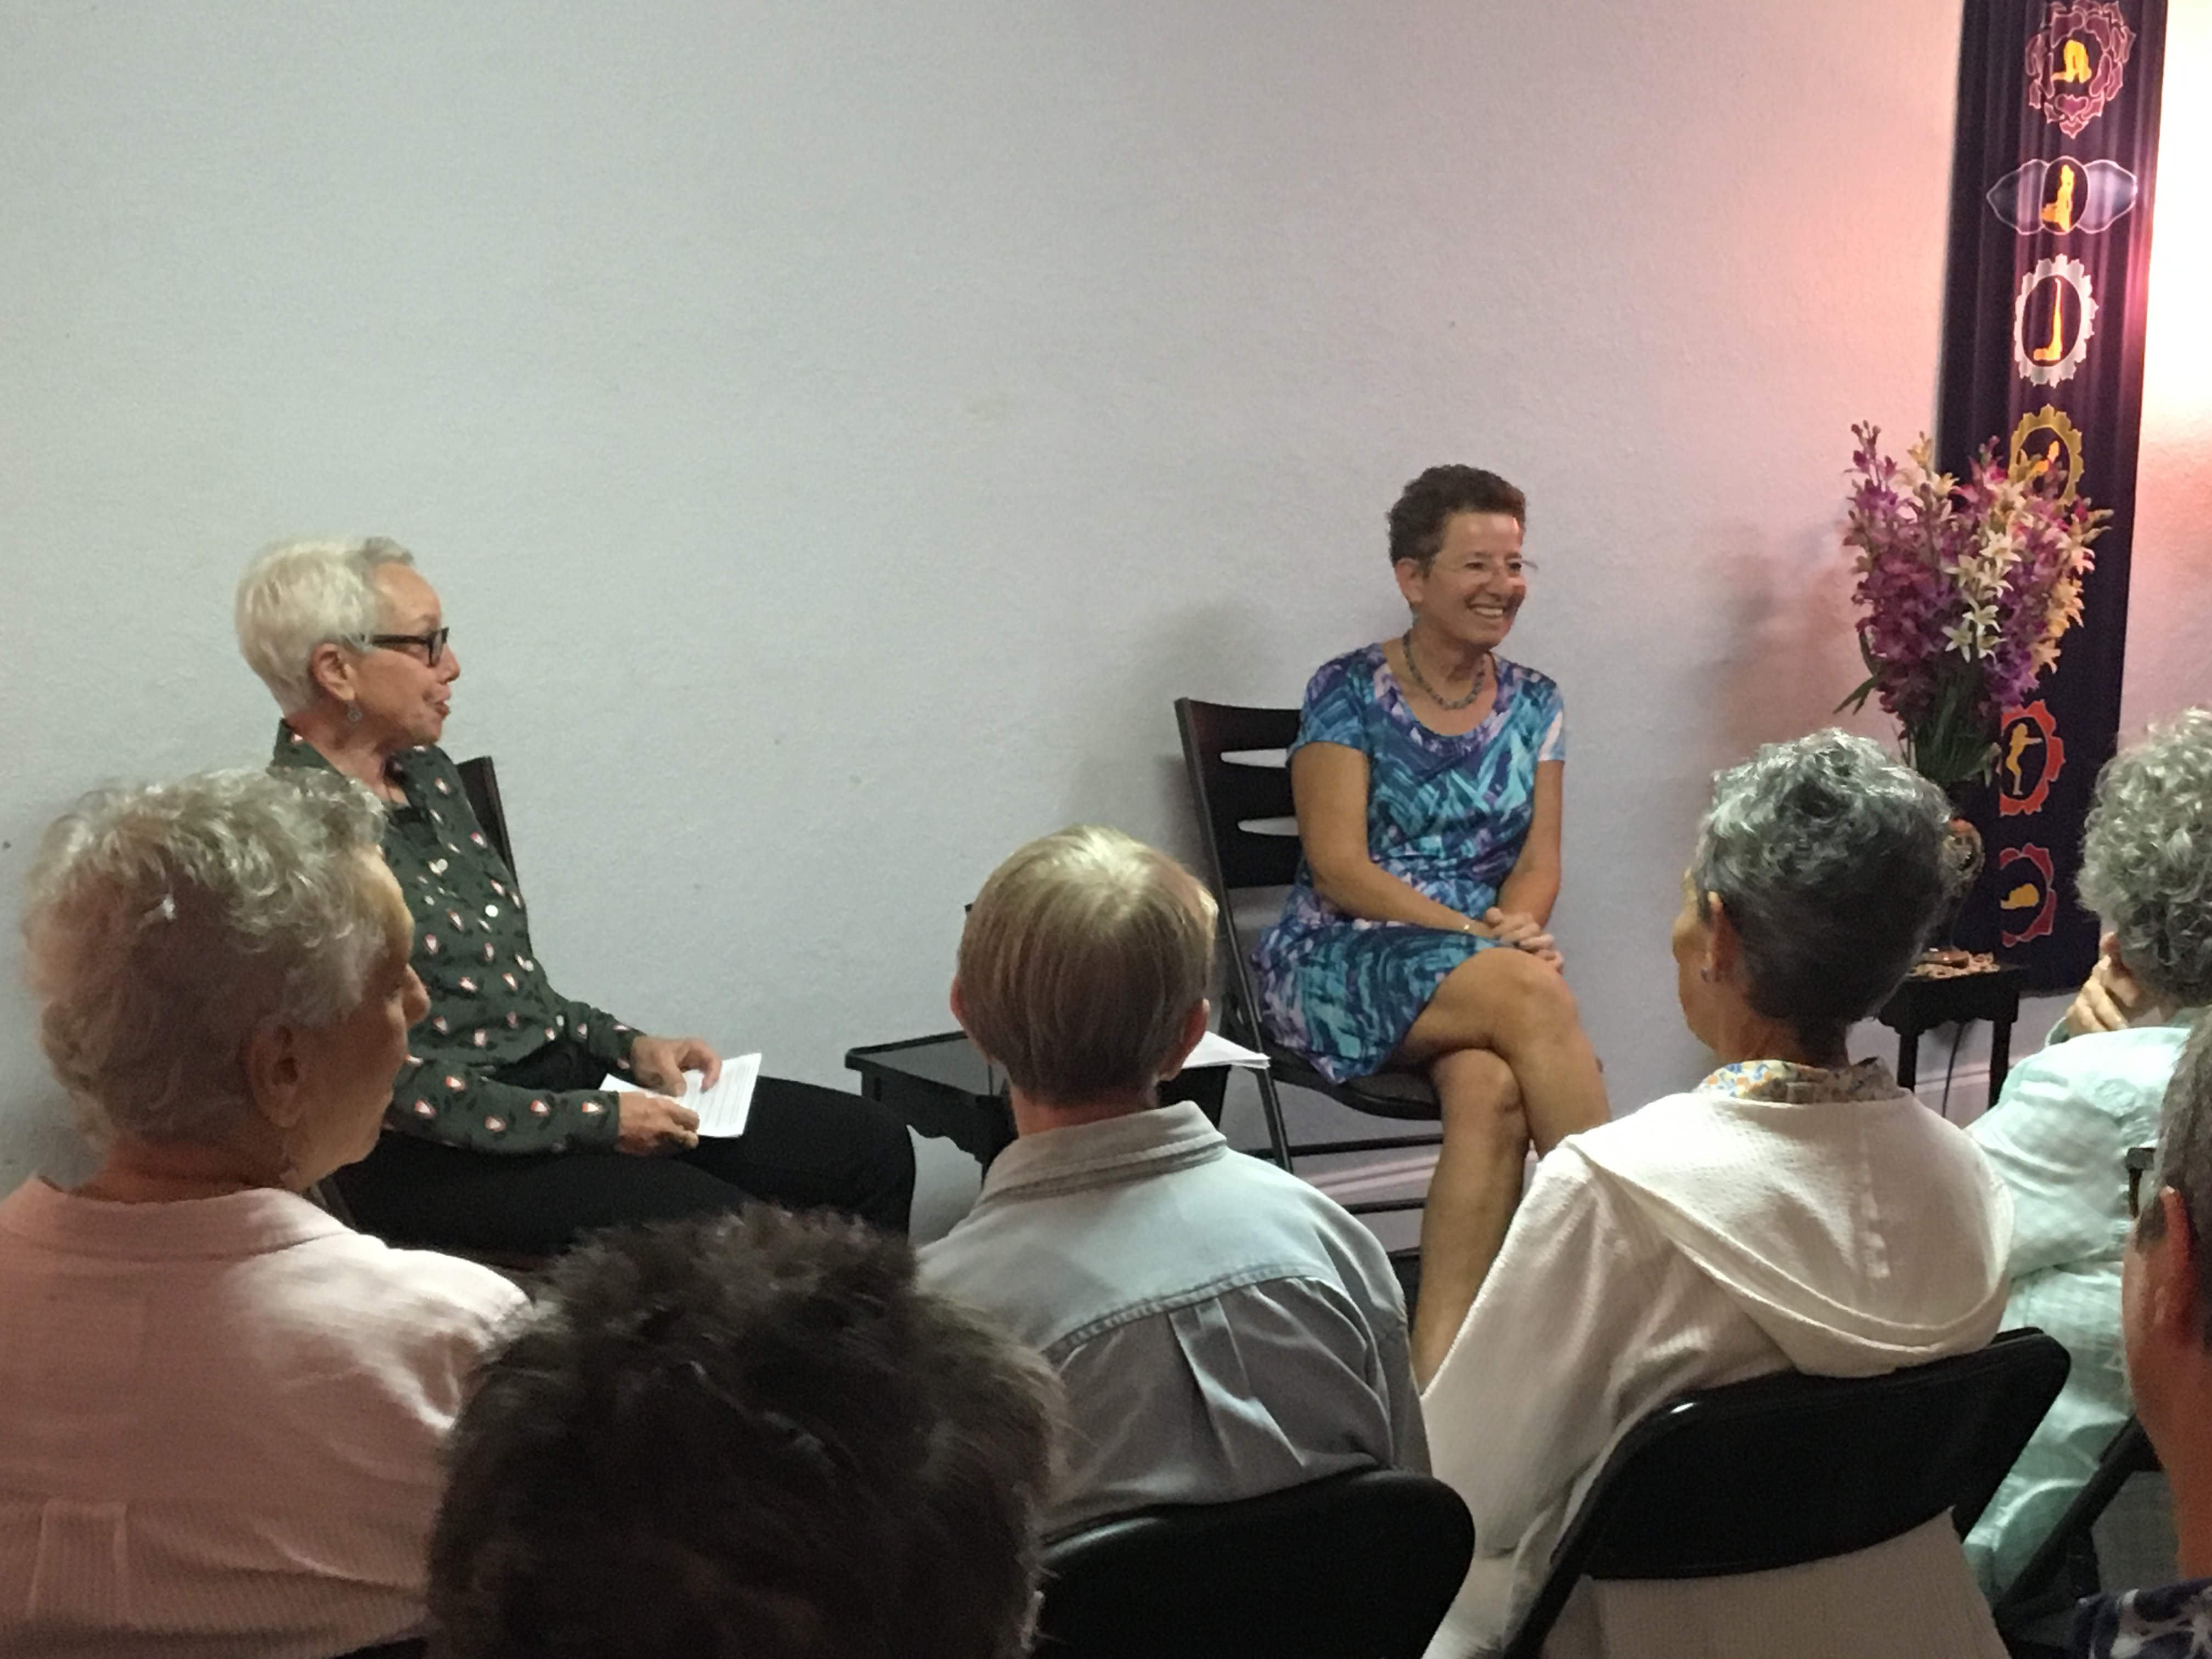 Alison Solomon and Phyllis Plotnick at book signing